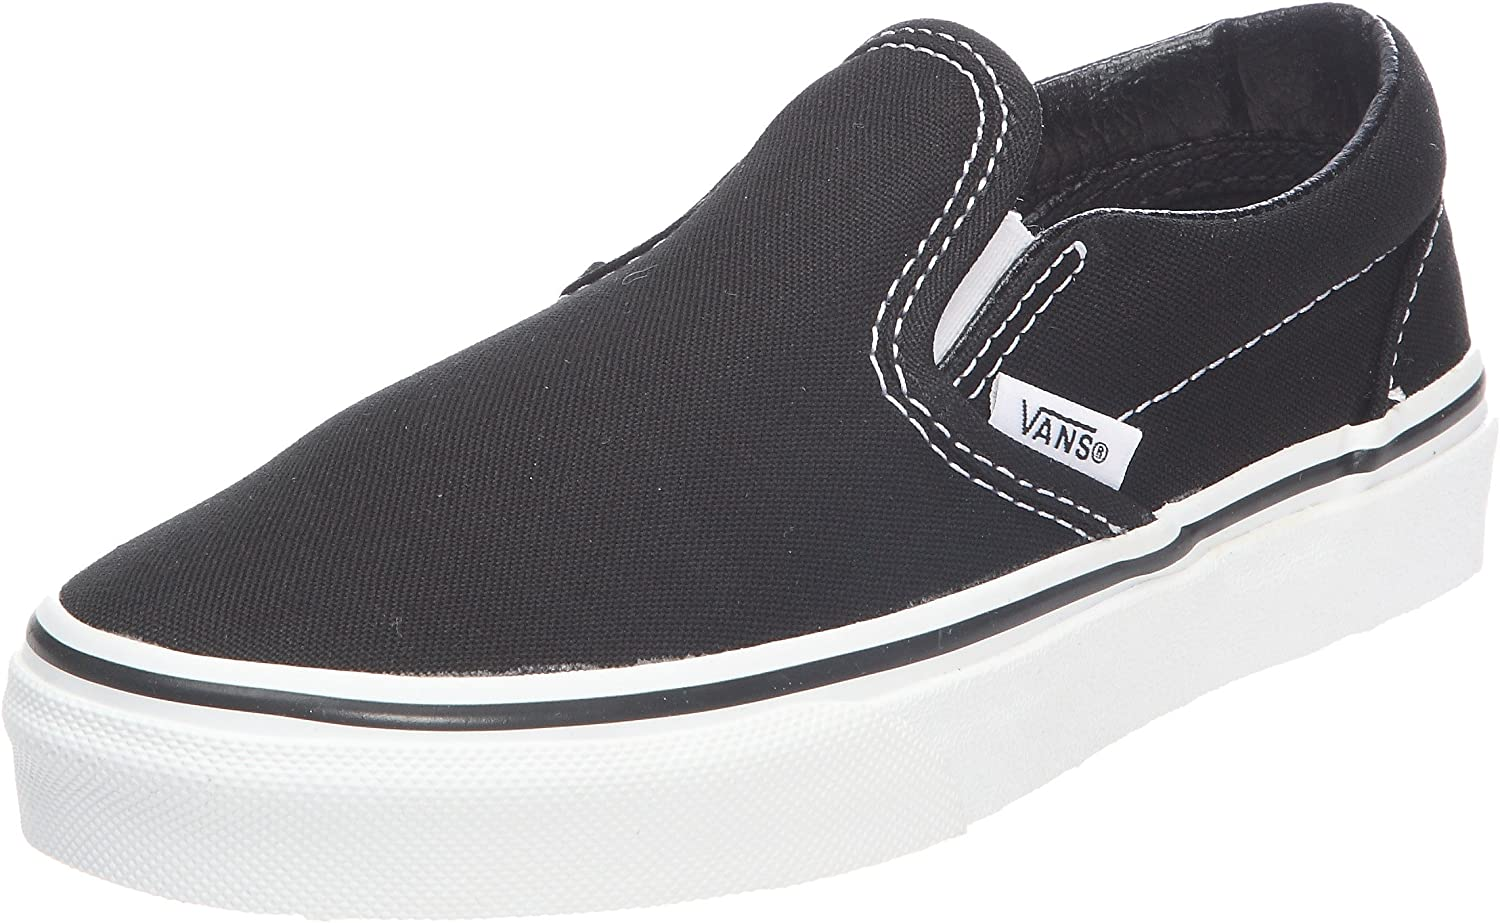 Vans Boys Classic Slip On Fashion Trainers, Black (Black), 28 EU